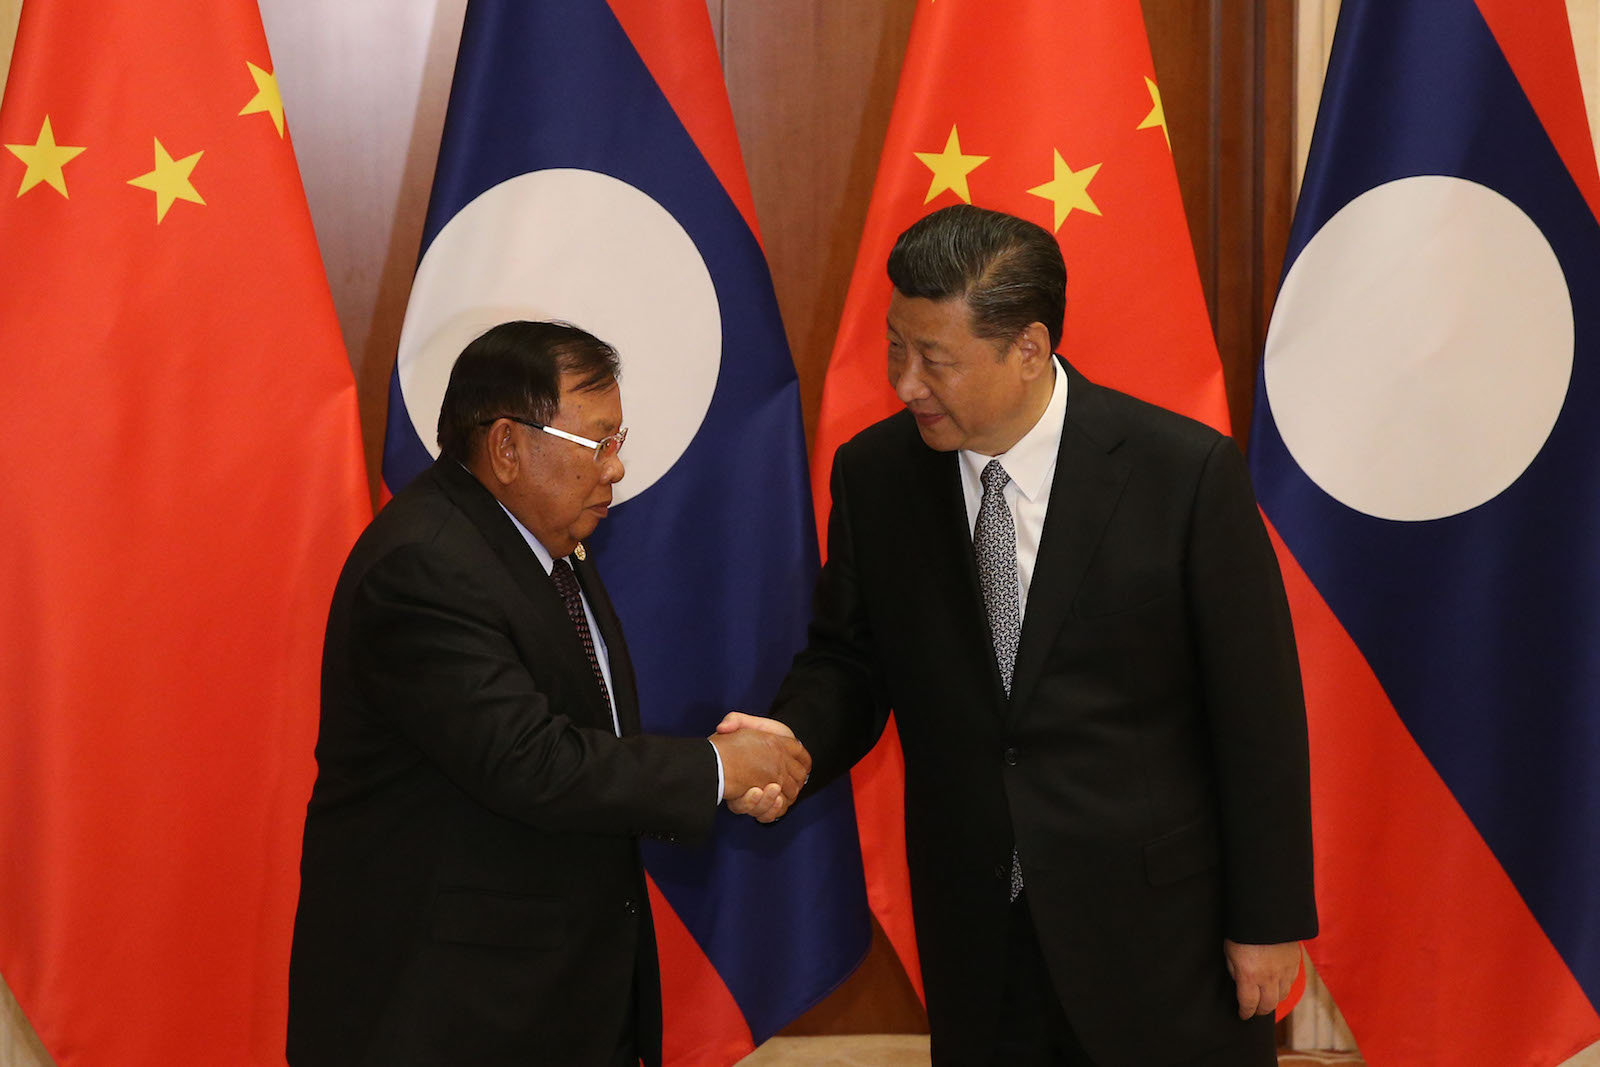 Laos' President Bounnhang Vorachith (L), shakes hands with Chinese President Xi Jinping (R) ahead a bilateral meeting at Diaoyutai State Guesthouse in Beijing on May 16, 2017.   / AFP PHOTO / POOL / WU HONG